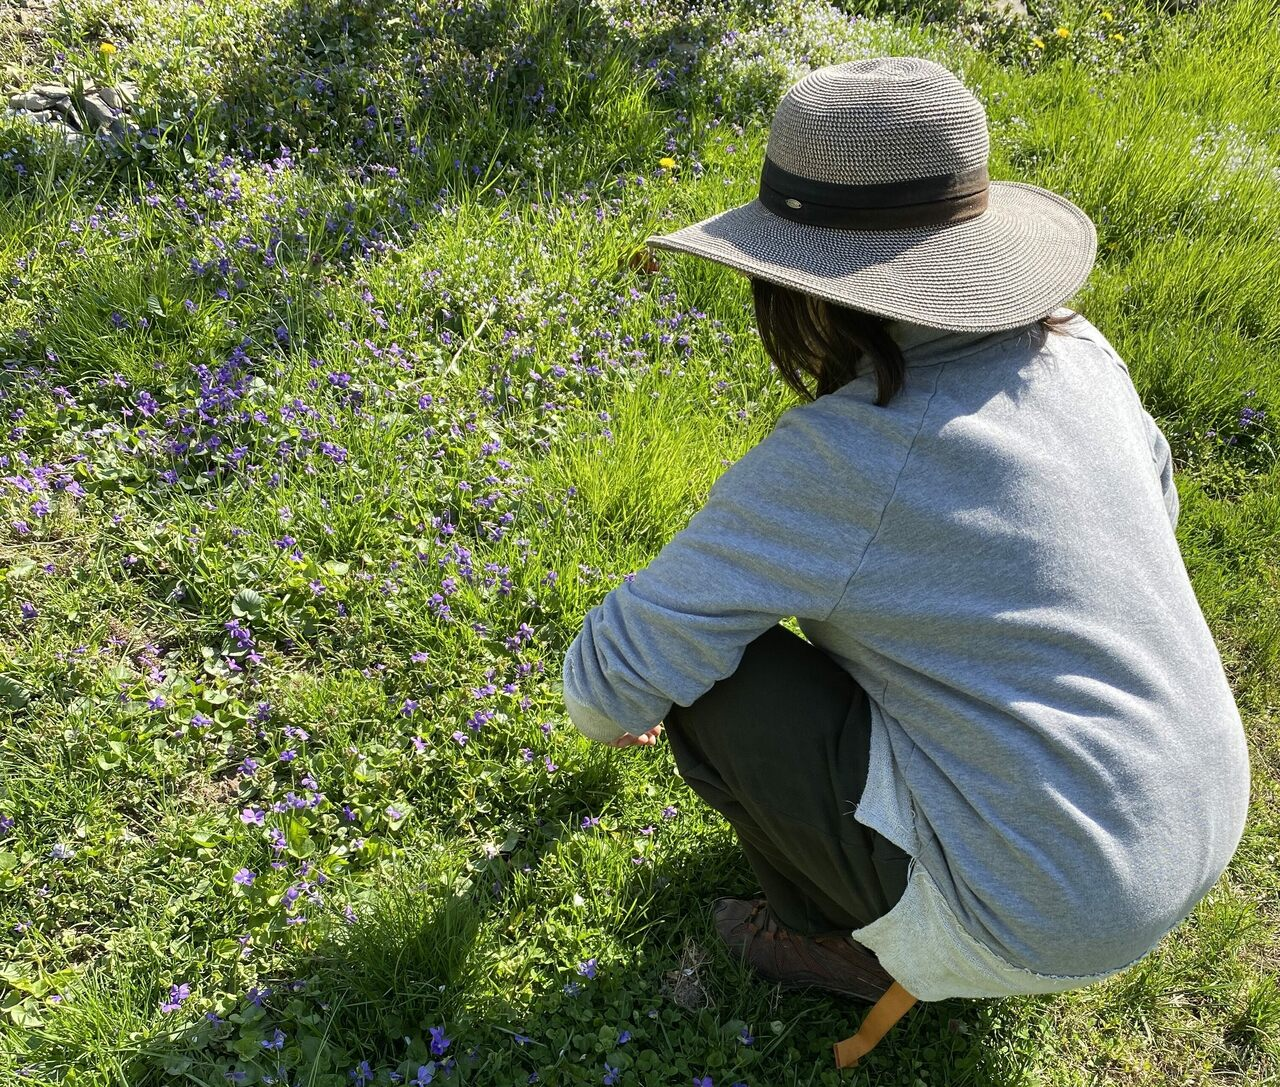 Tama Matsuoka Wong in a field of wild violets.